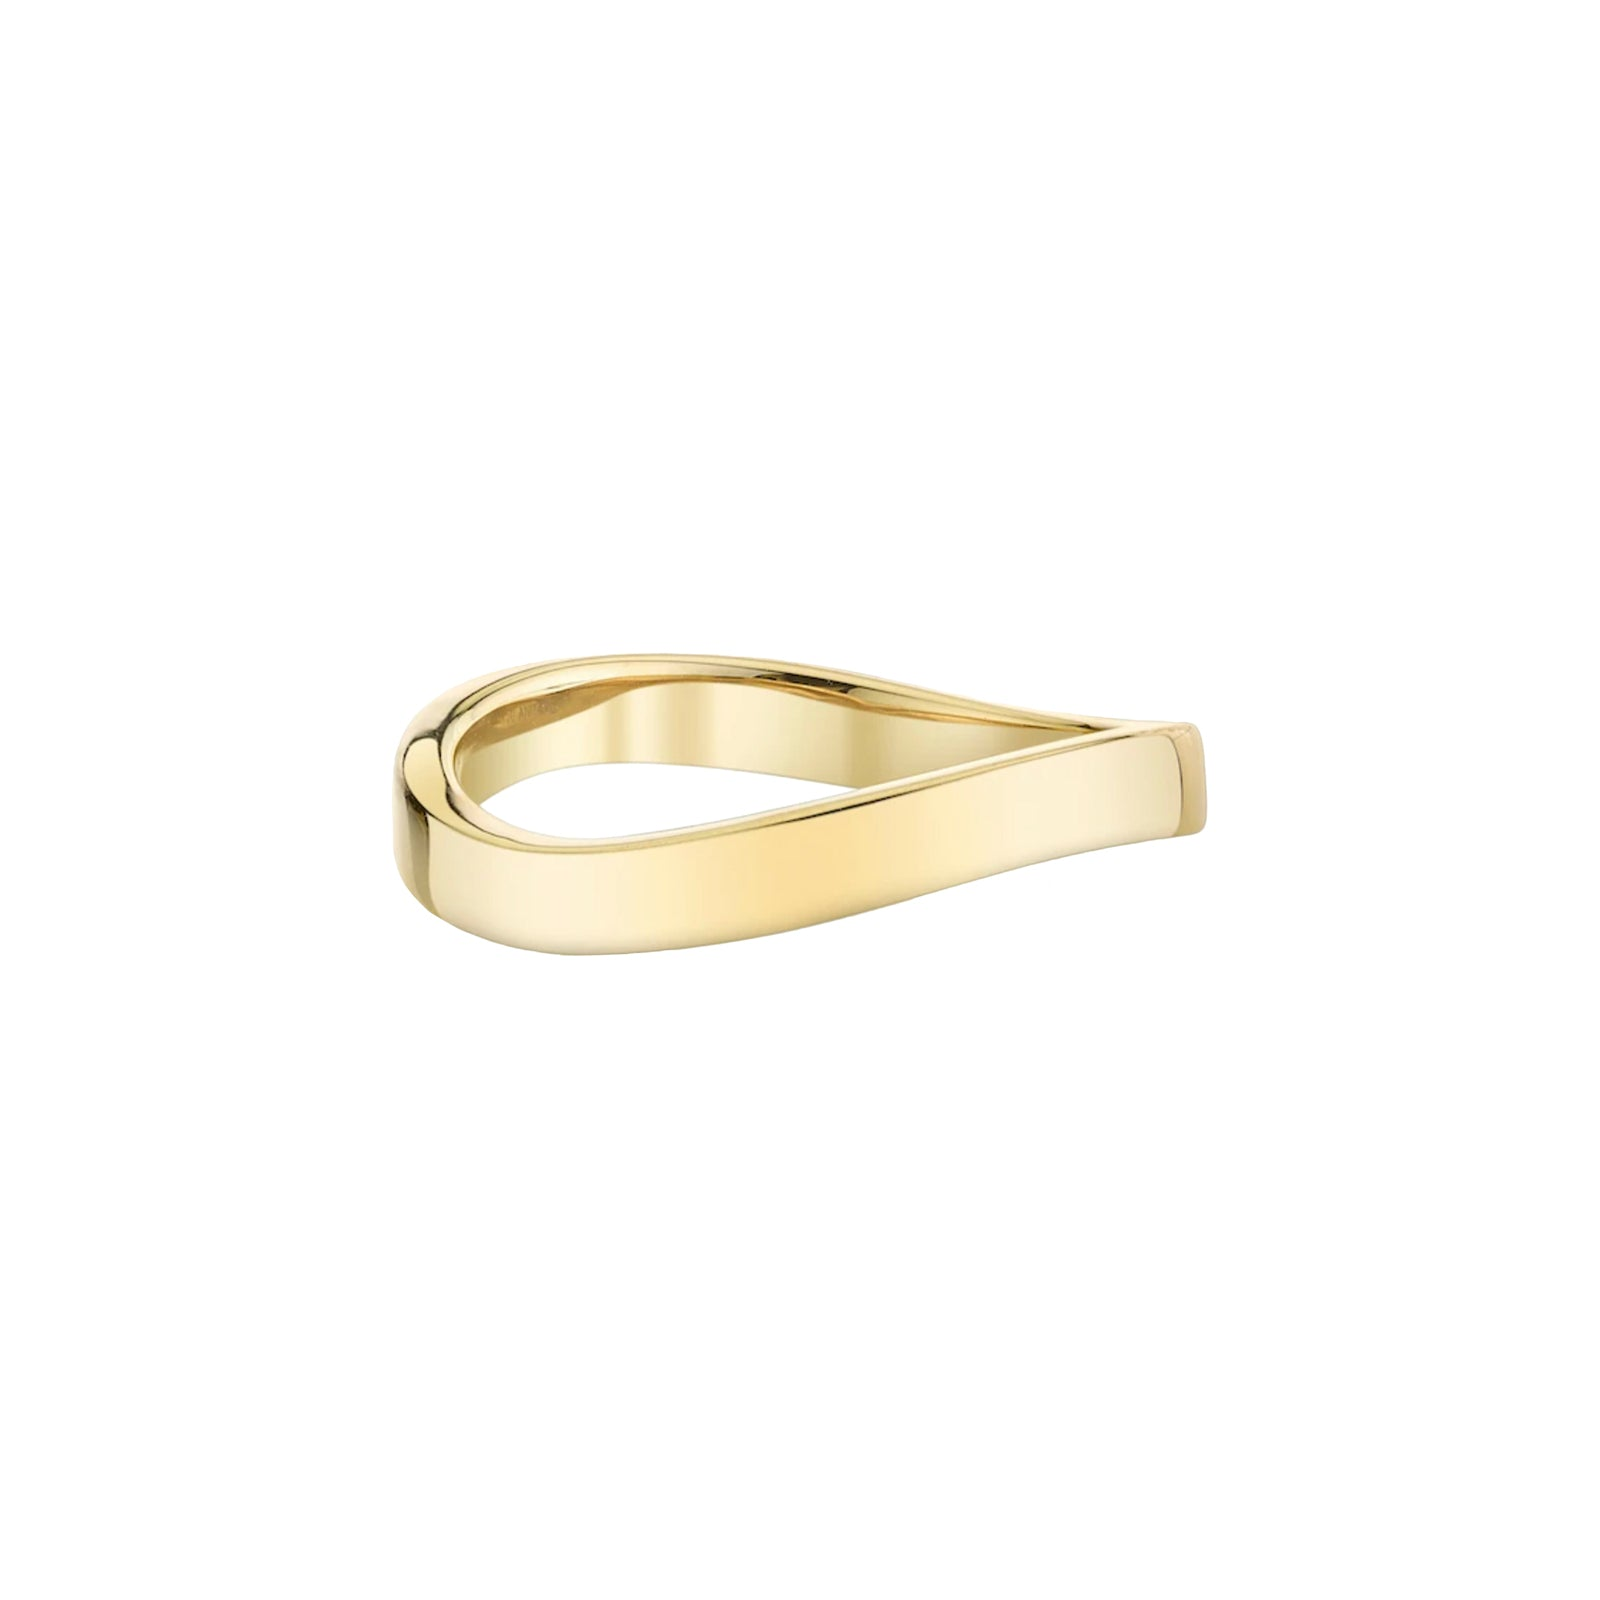 Anita Ko Curved Ring - Rings - Broken English Jewelry